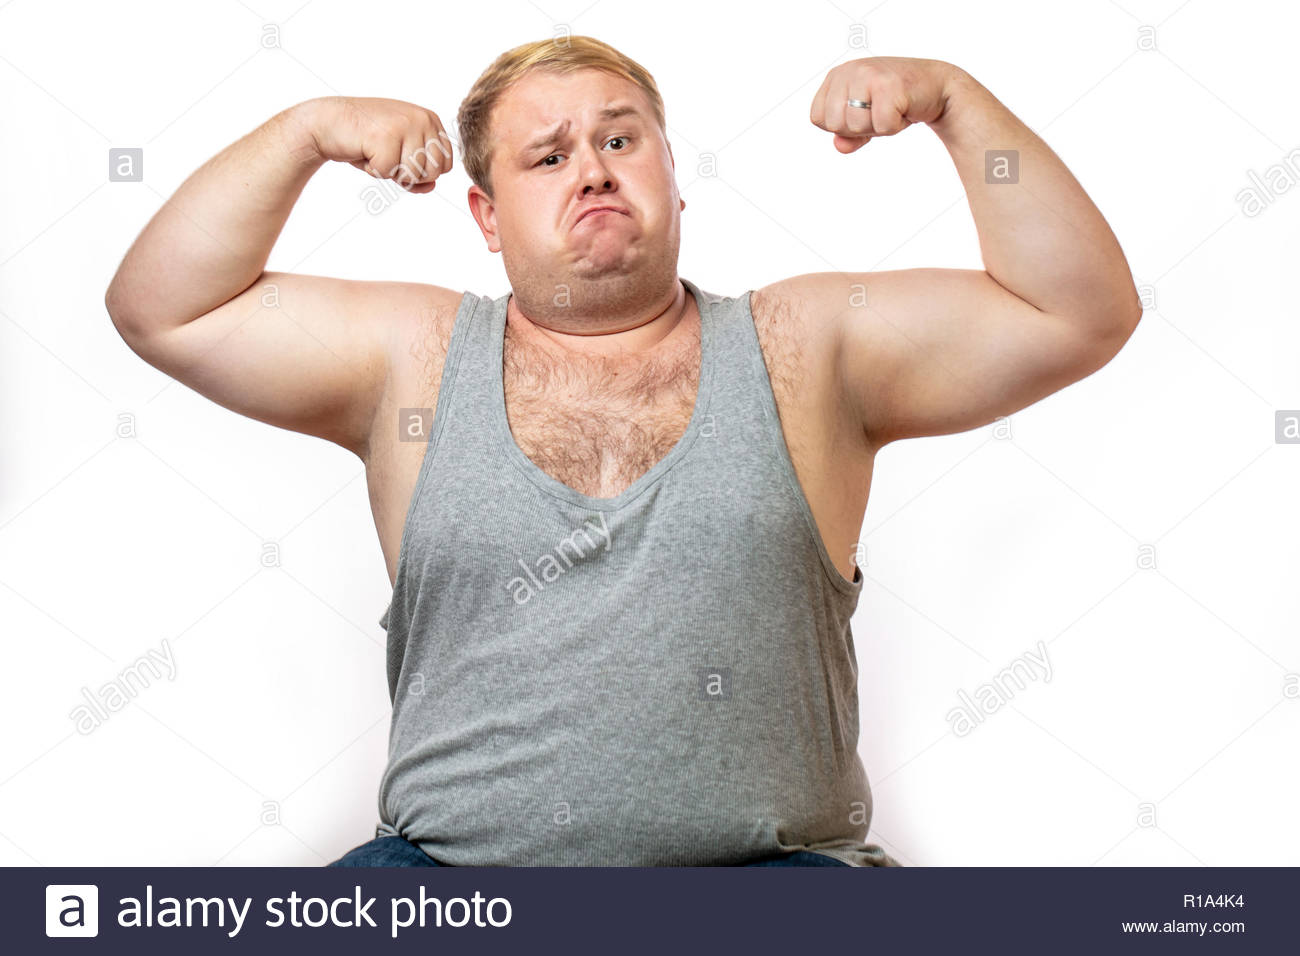 Funny overweight sports man flexing his muscle isolated on white 1300x956